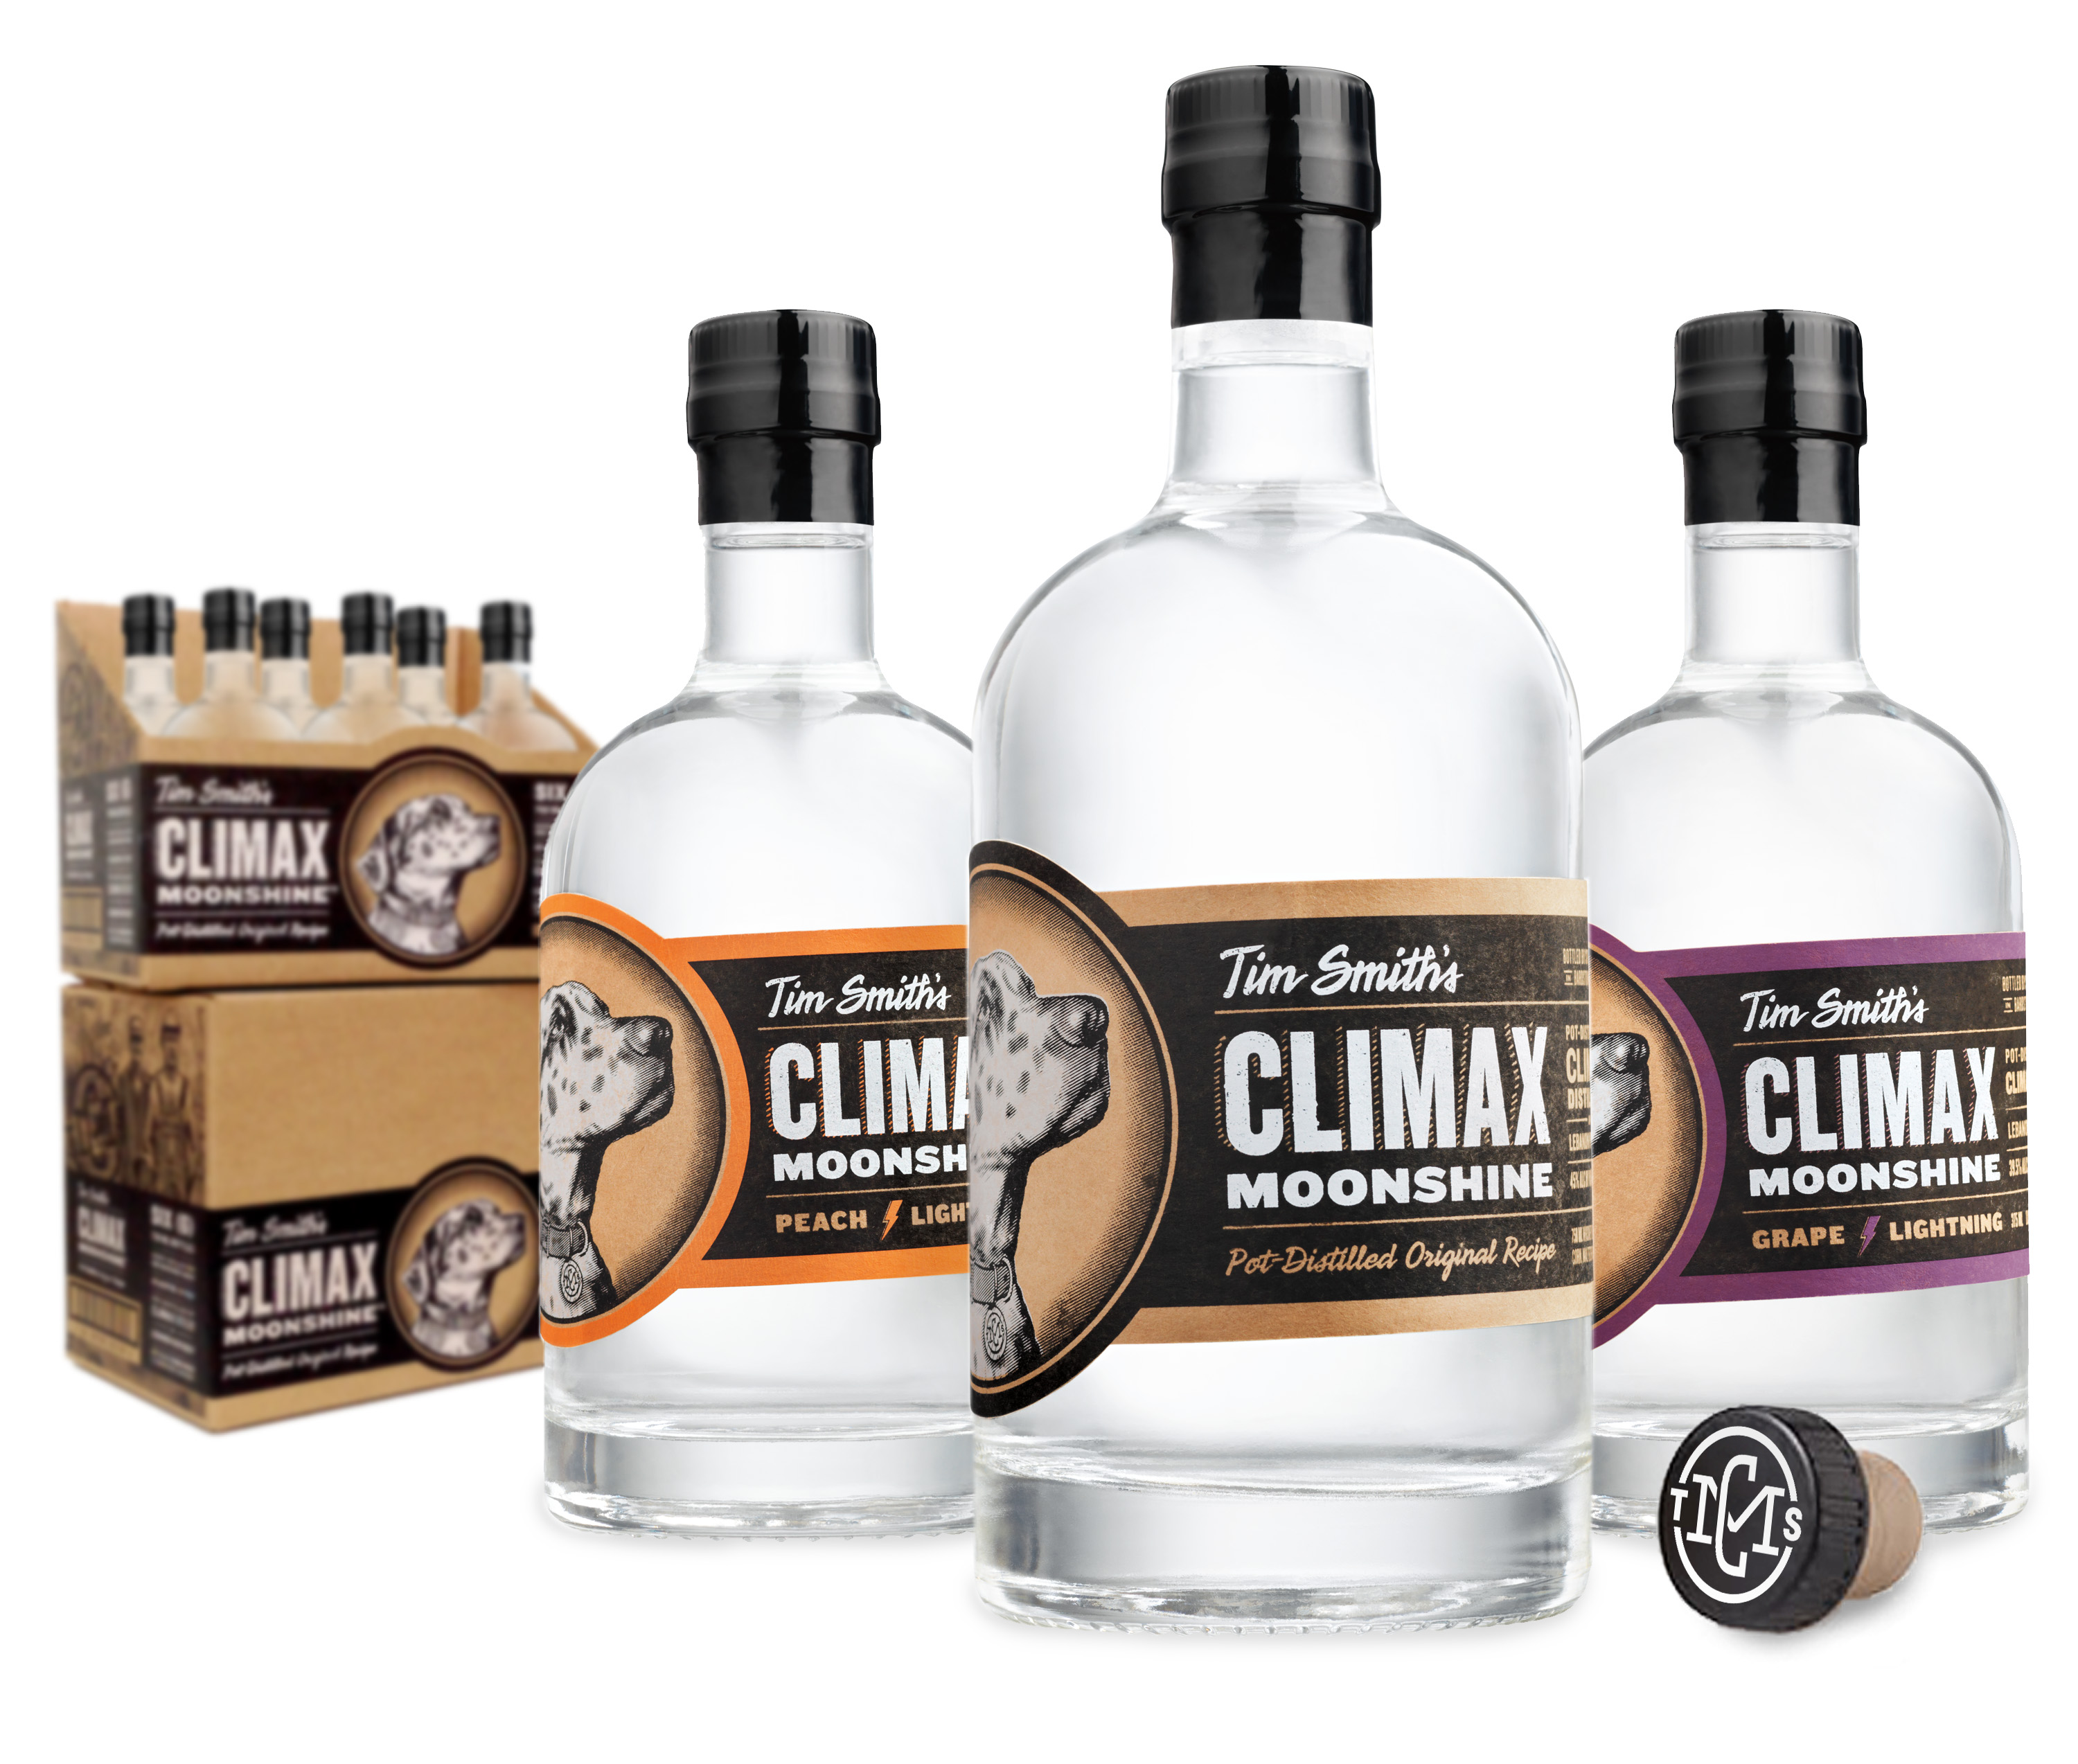 Climax Moonshine